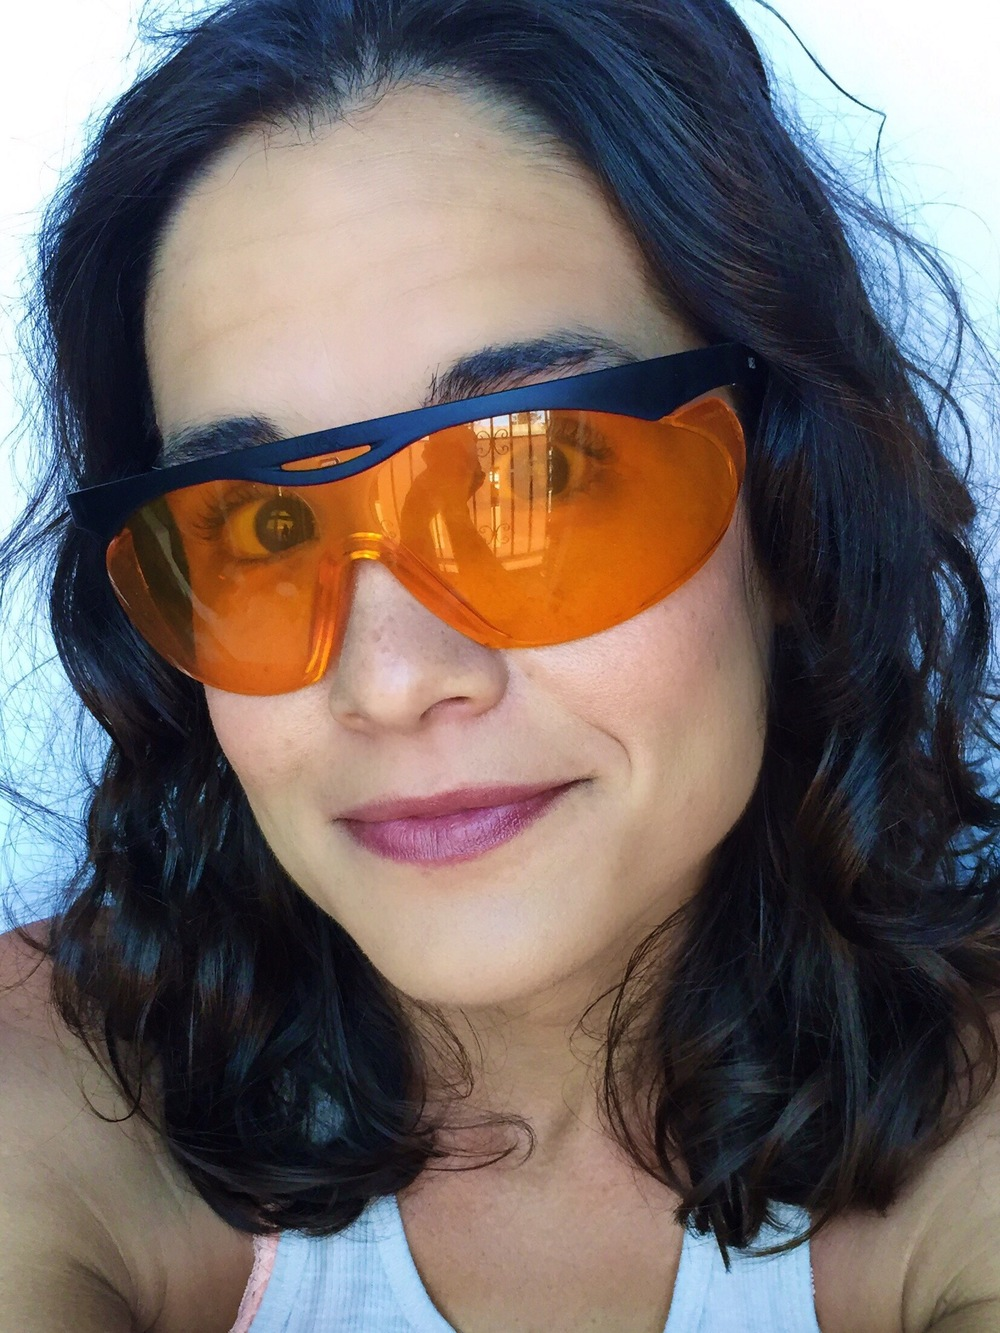 Amber Glasses - Block Blue Light at Night & Protect Melatonin production | janny: organically.